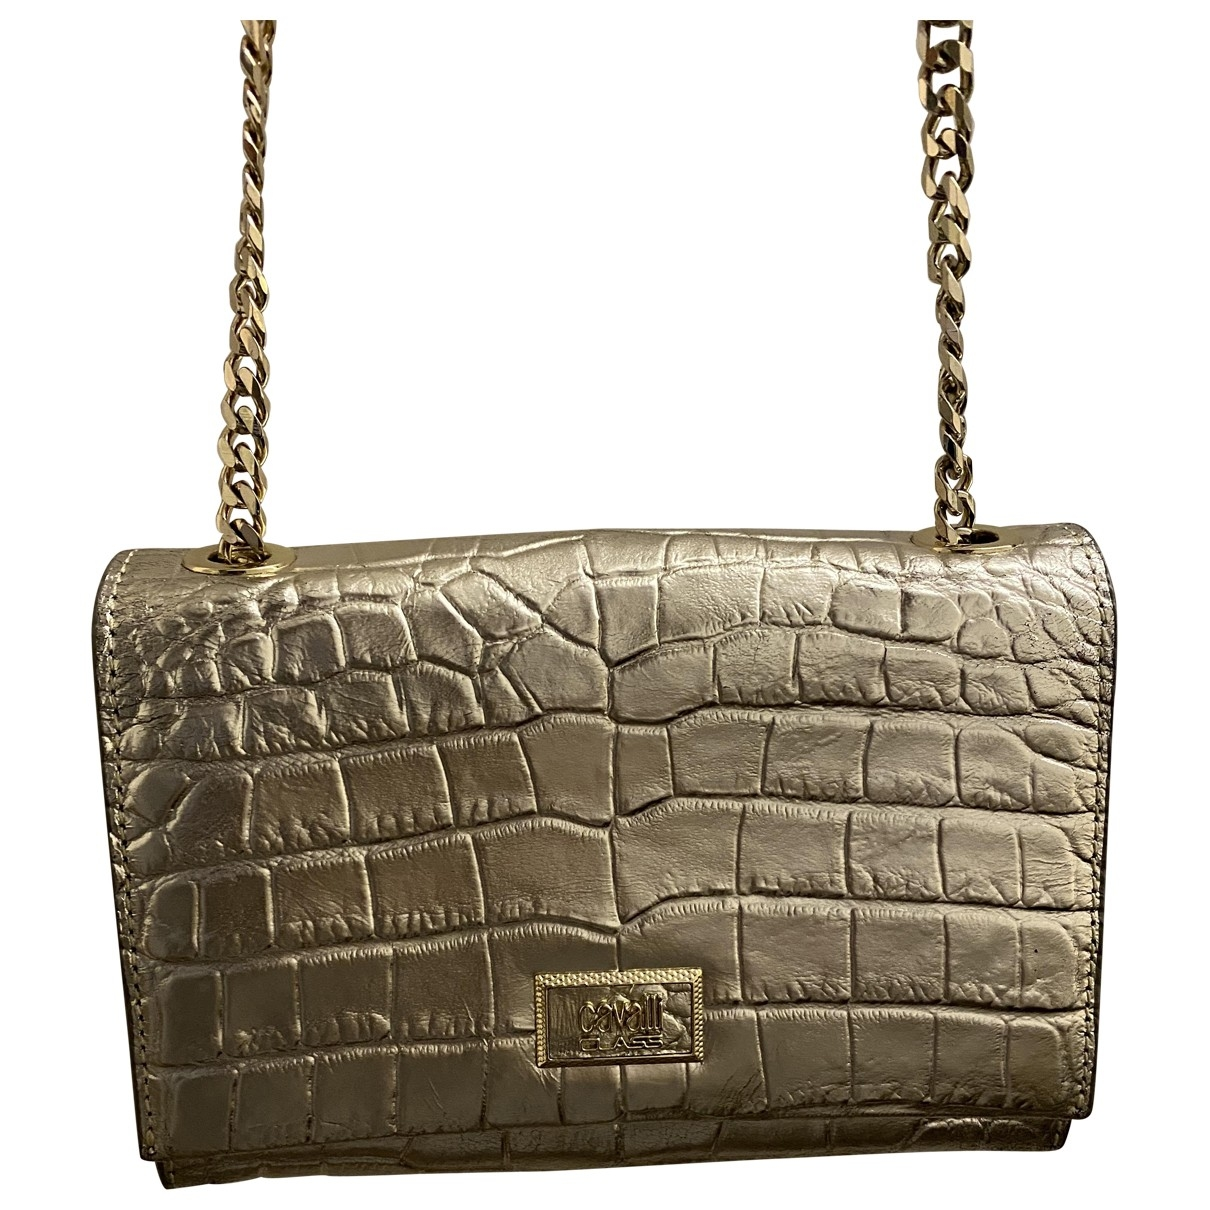 Class Cavalli \N Silver Patent leather Clutch bag for Women \N